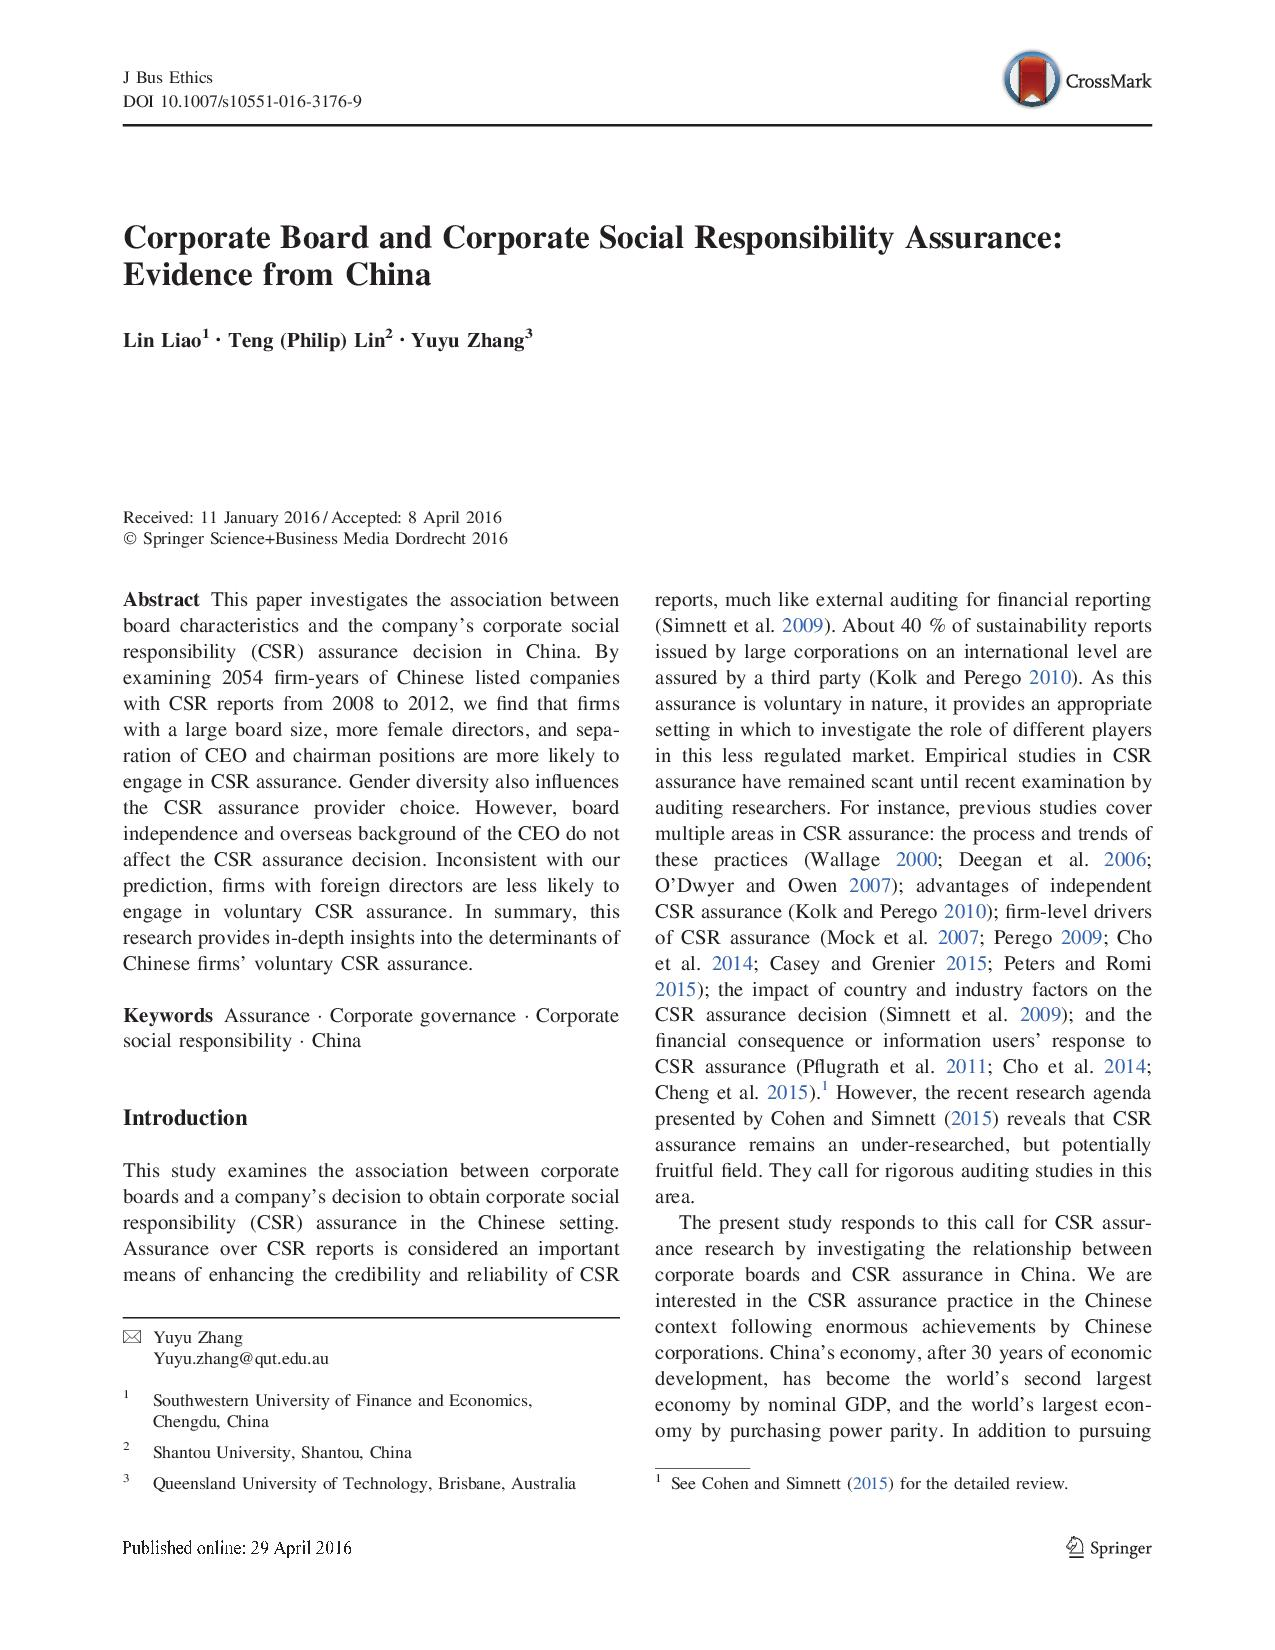 Corporate Board and Corporate Social Responsibility Assurance: Evidence from China